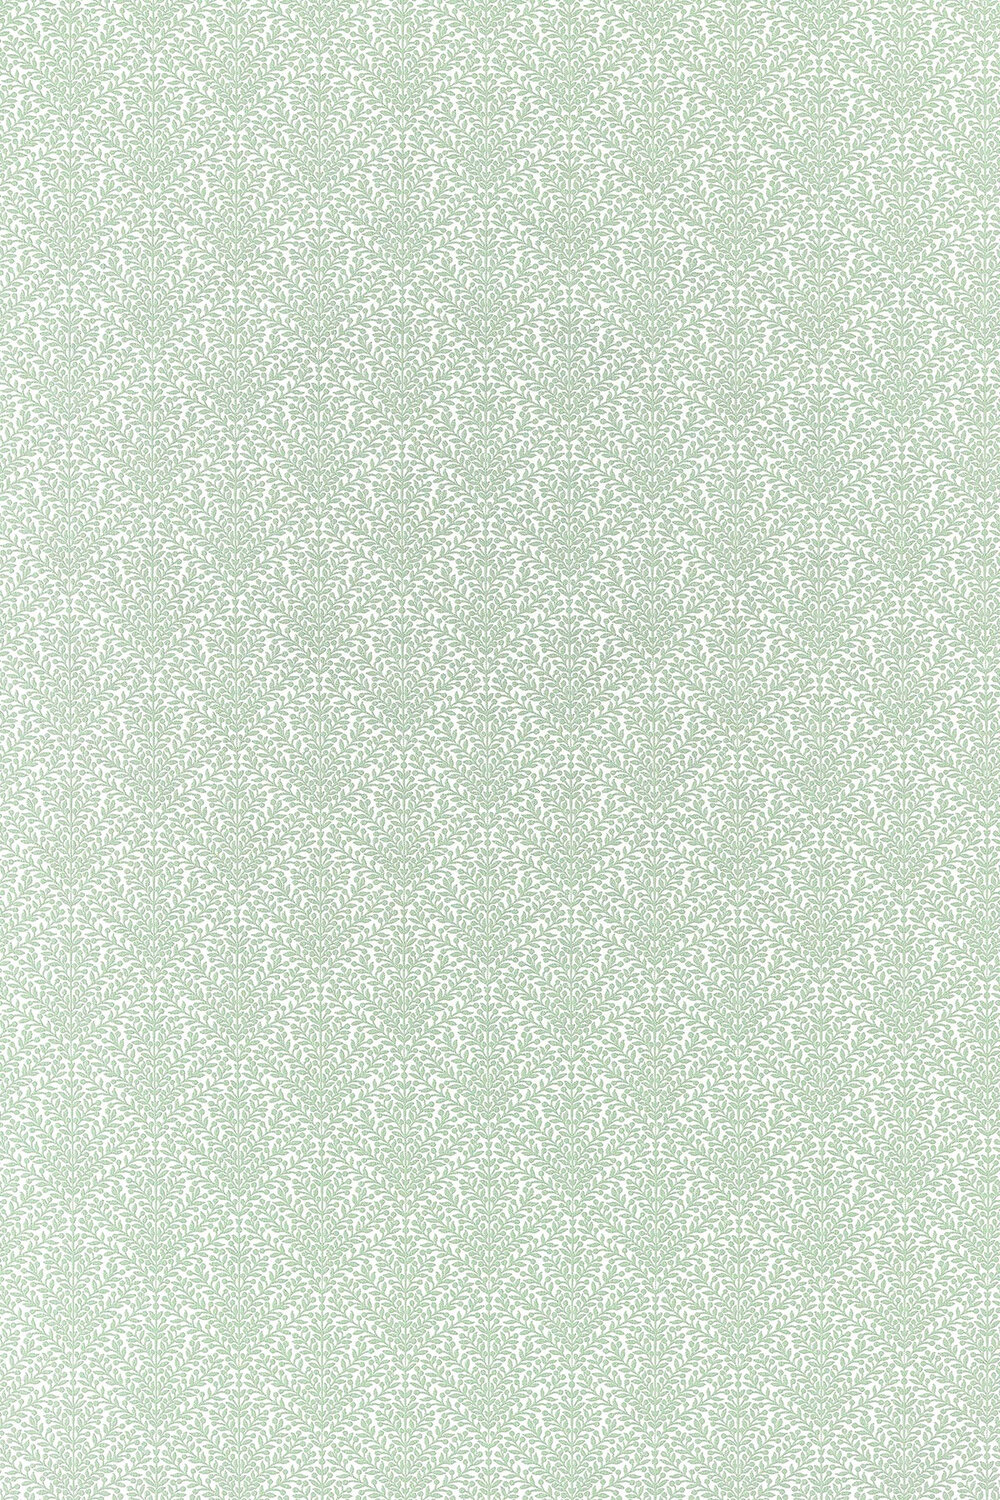 Orchard Tree Weave Fabric - Fountain Green - by Sanderson